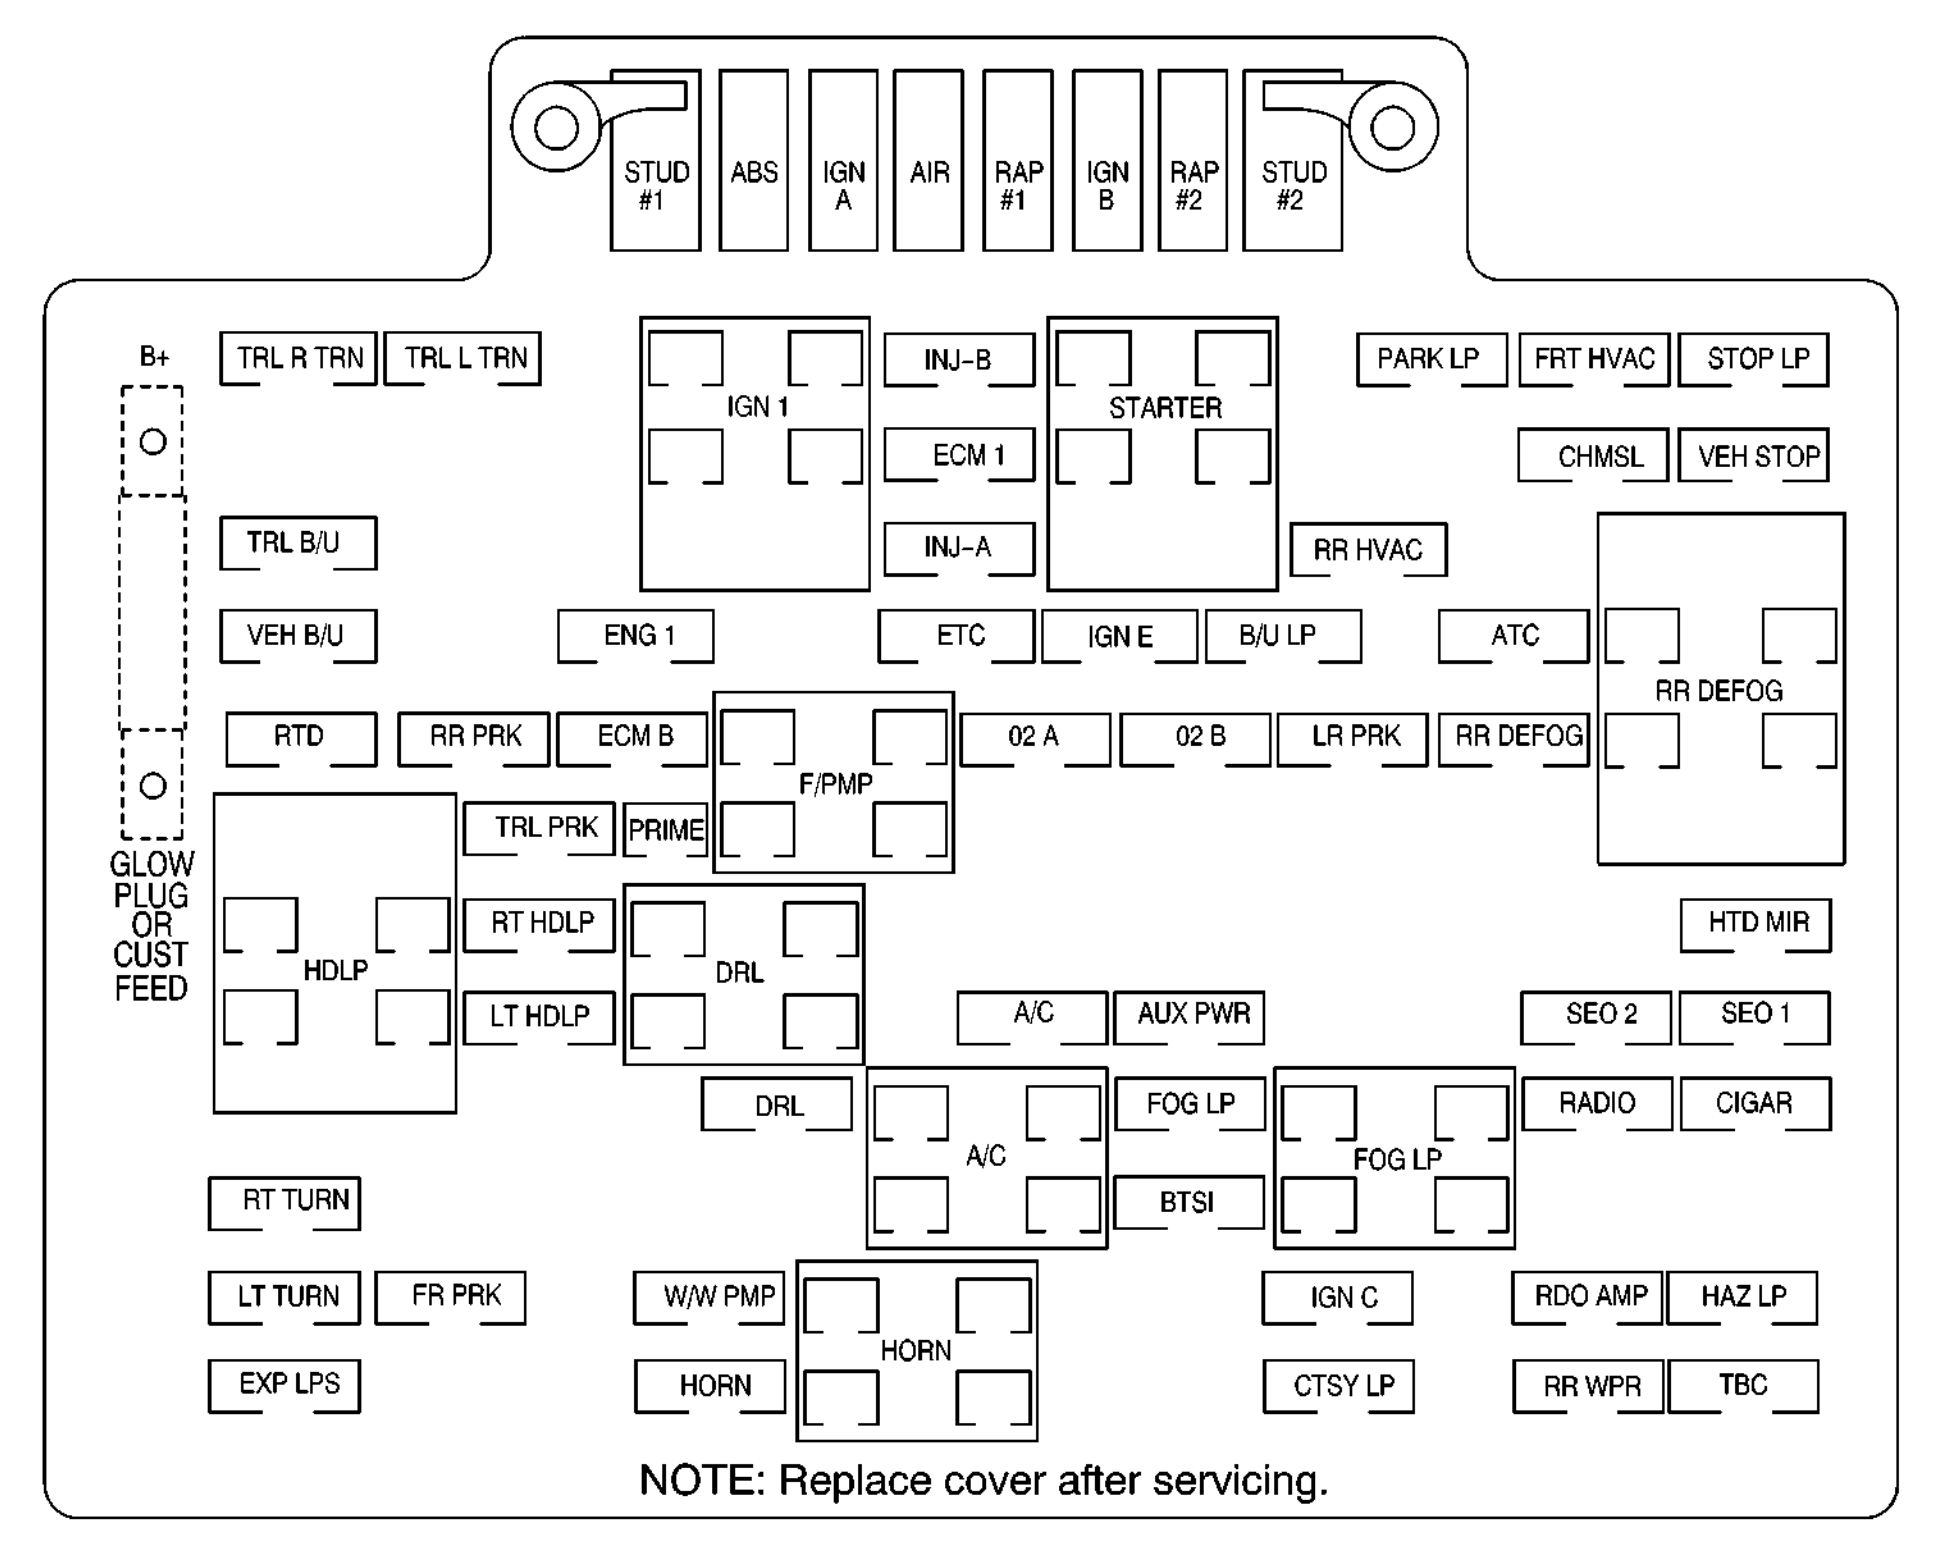 Fuse Diagram For 2001 Suburban | Wiring Diagram on